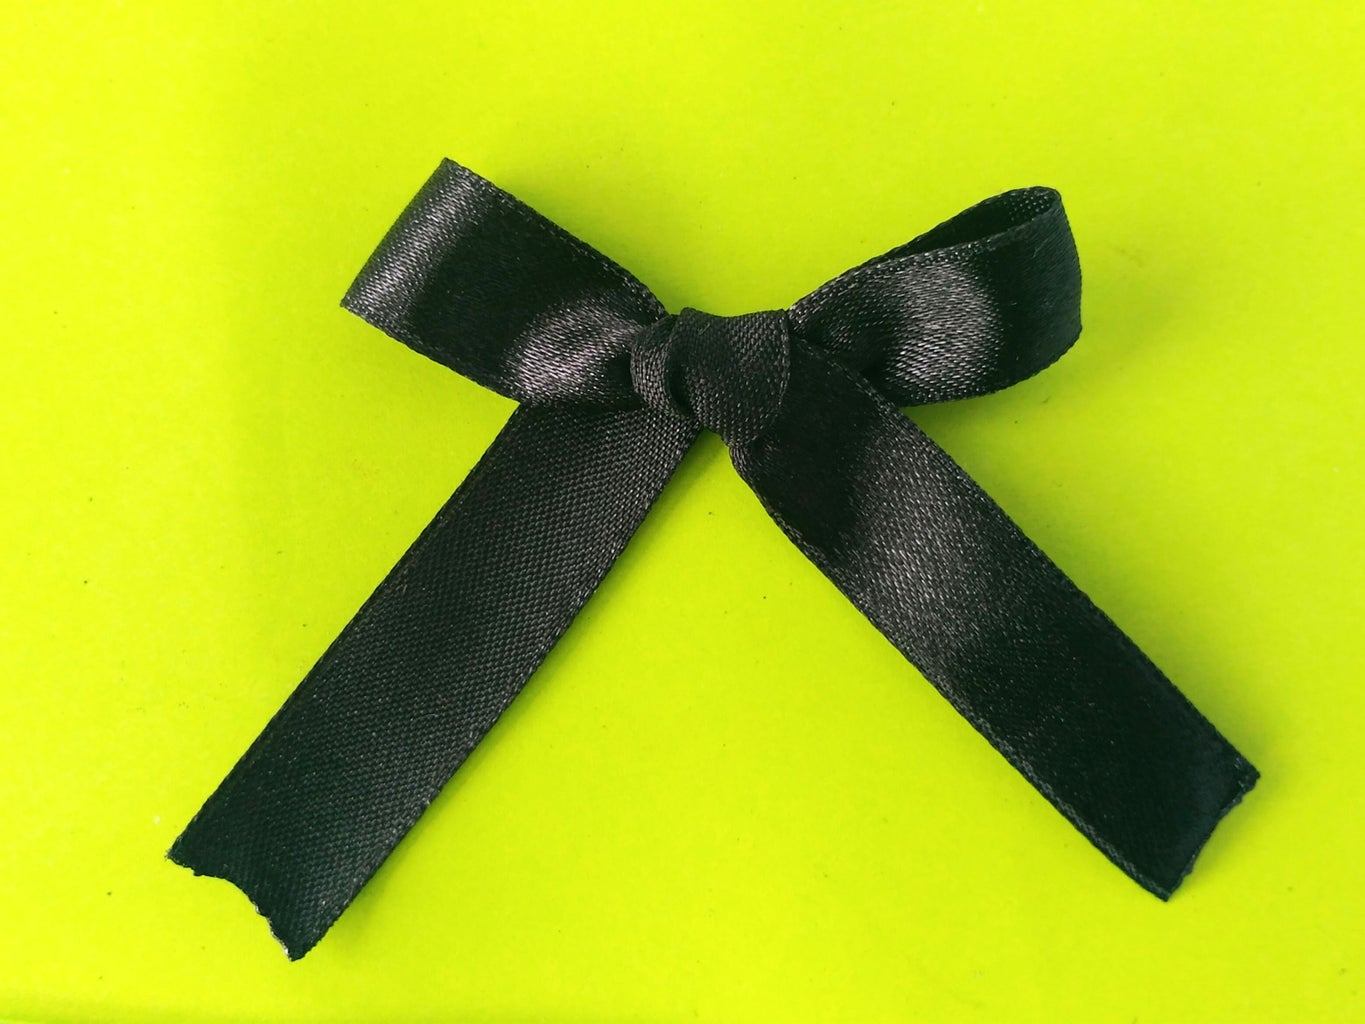 Make a Small Bow for the Necklace